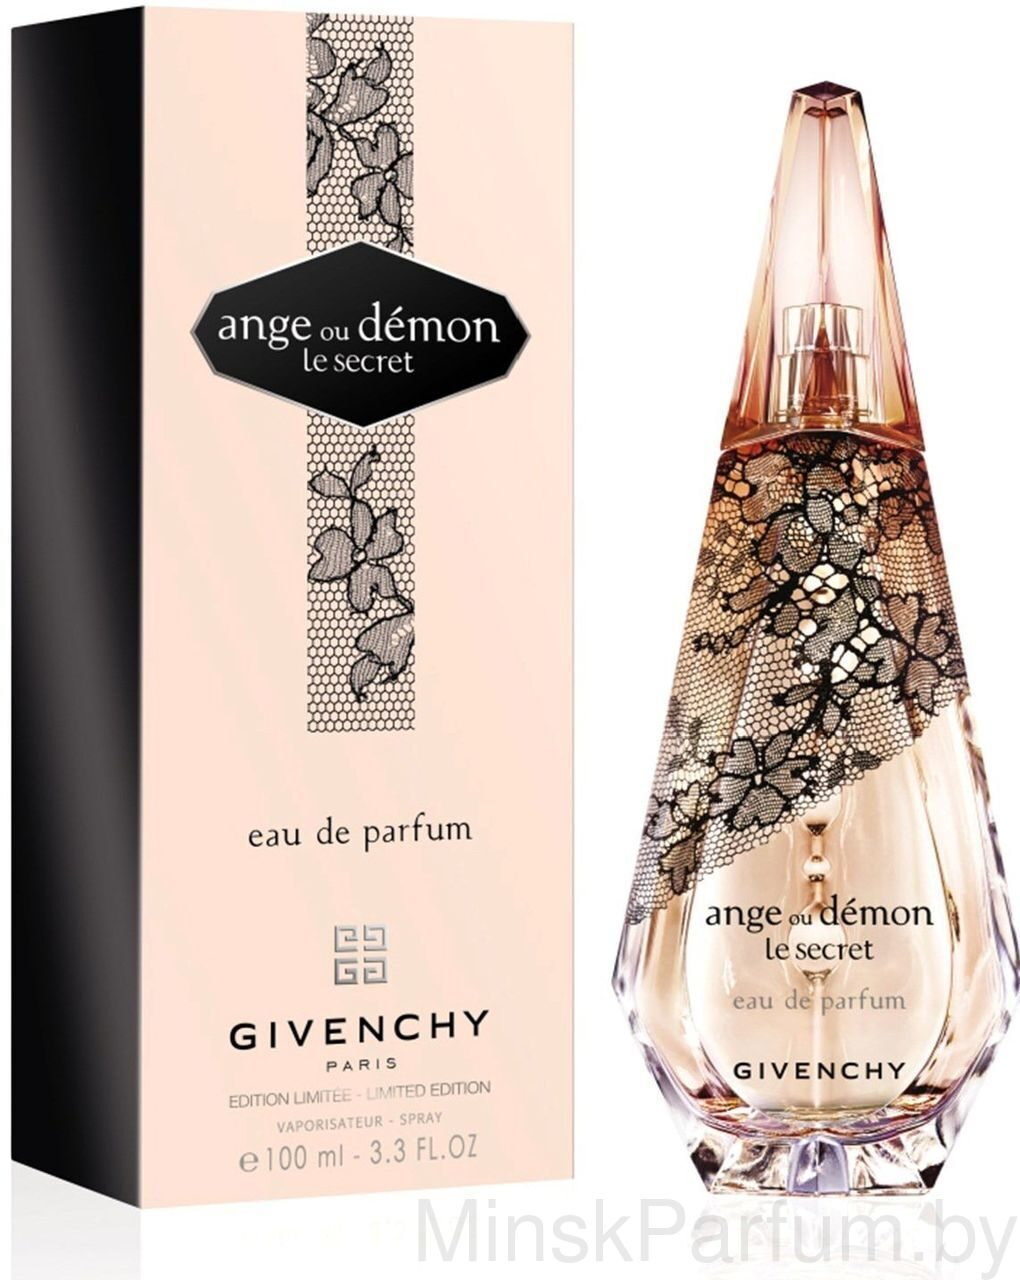 Givenchy Ange Ou Demon Le Secret Eau De Parfum Limited Edition